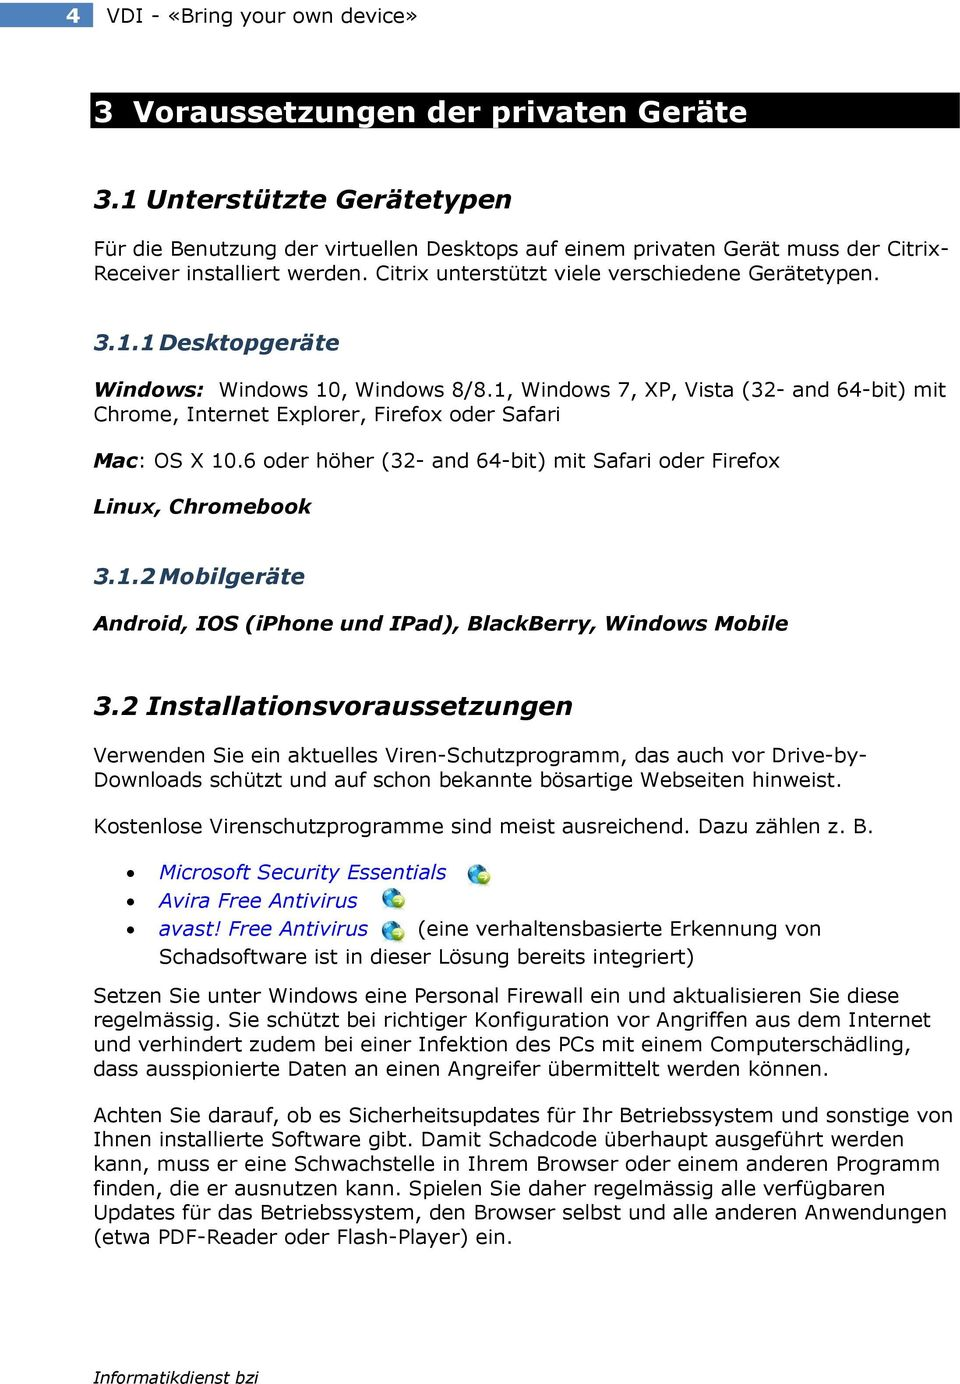 1, Windows 7, XP, Vista (32- and 64-bit) mit Chrome, Internet Explorer, Firefox oder Safari Mac: OS X 10.6 oder höher (32- and 64-bit) mit Safari oder Firefox Linux, Chromebook 3.1.2 Mobilgeräte Android, IOS (iphone und IPad), BlackBerry, Windows Mobile 3.